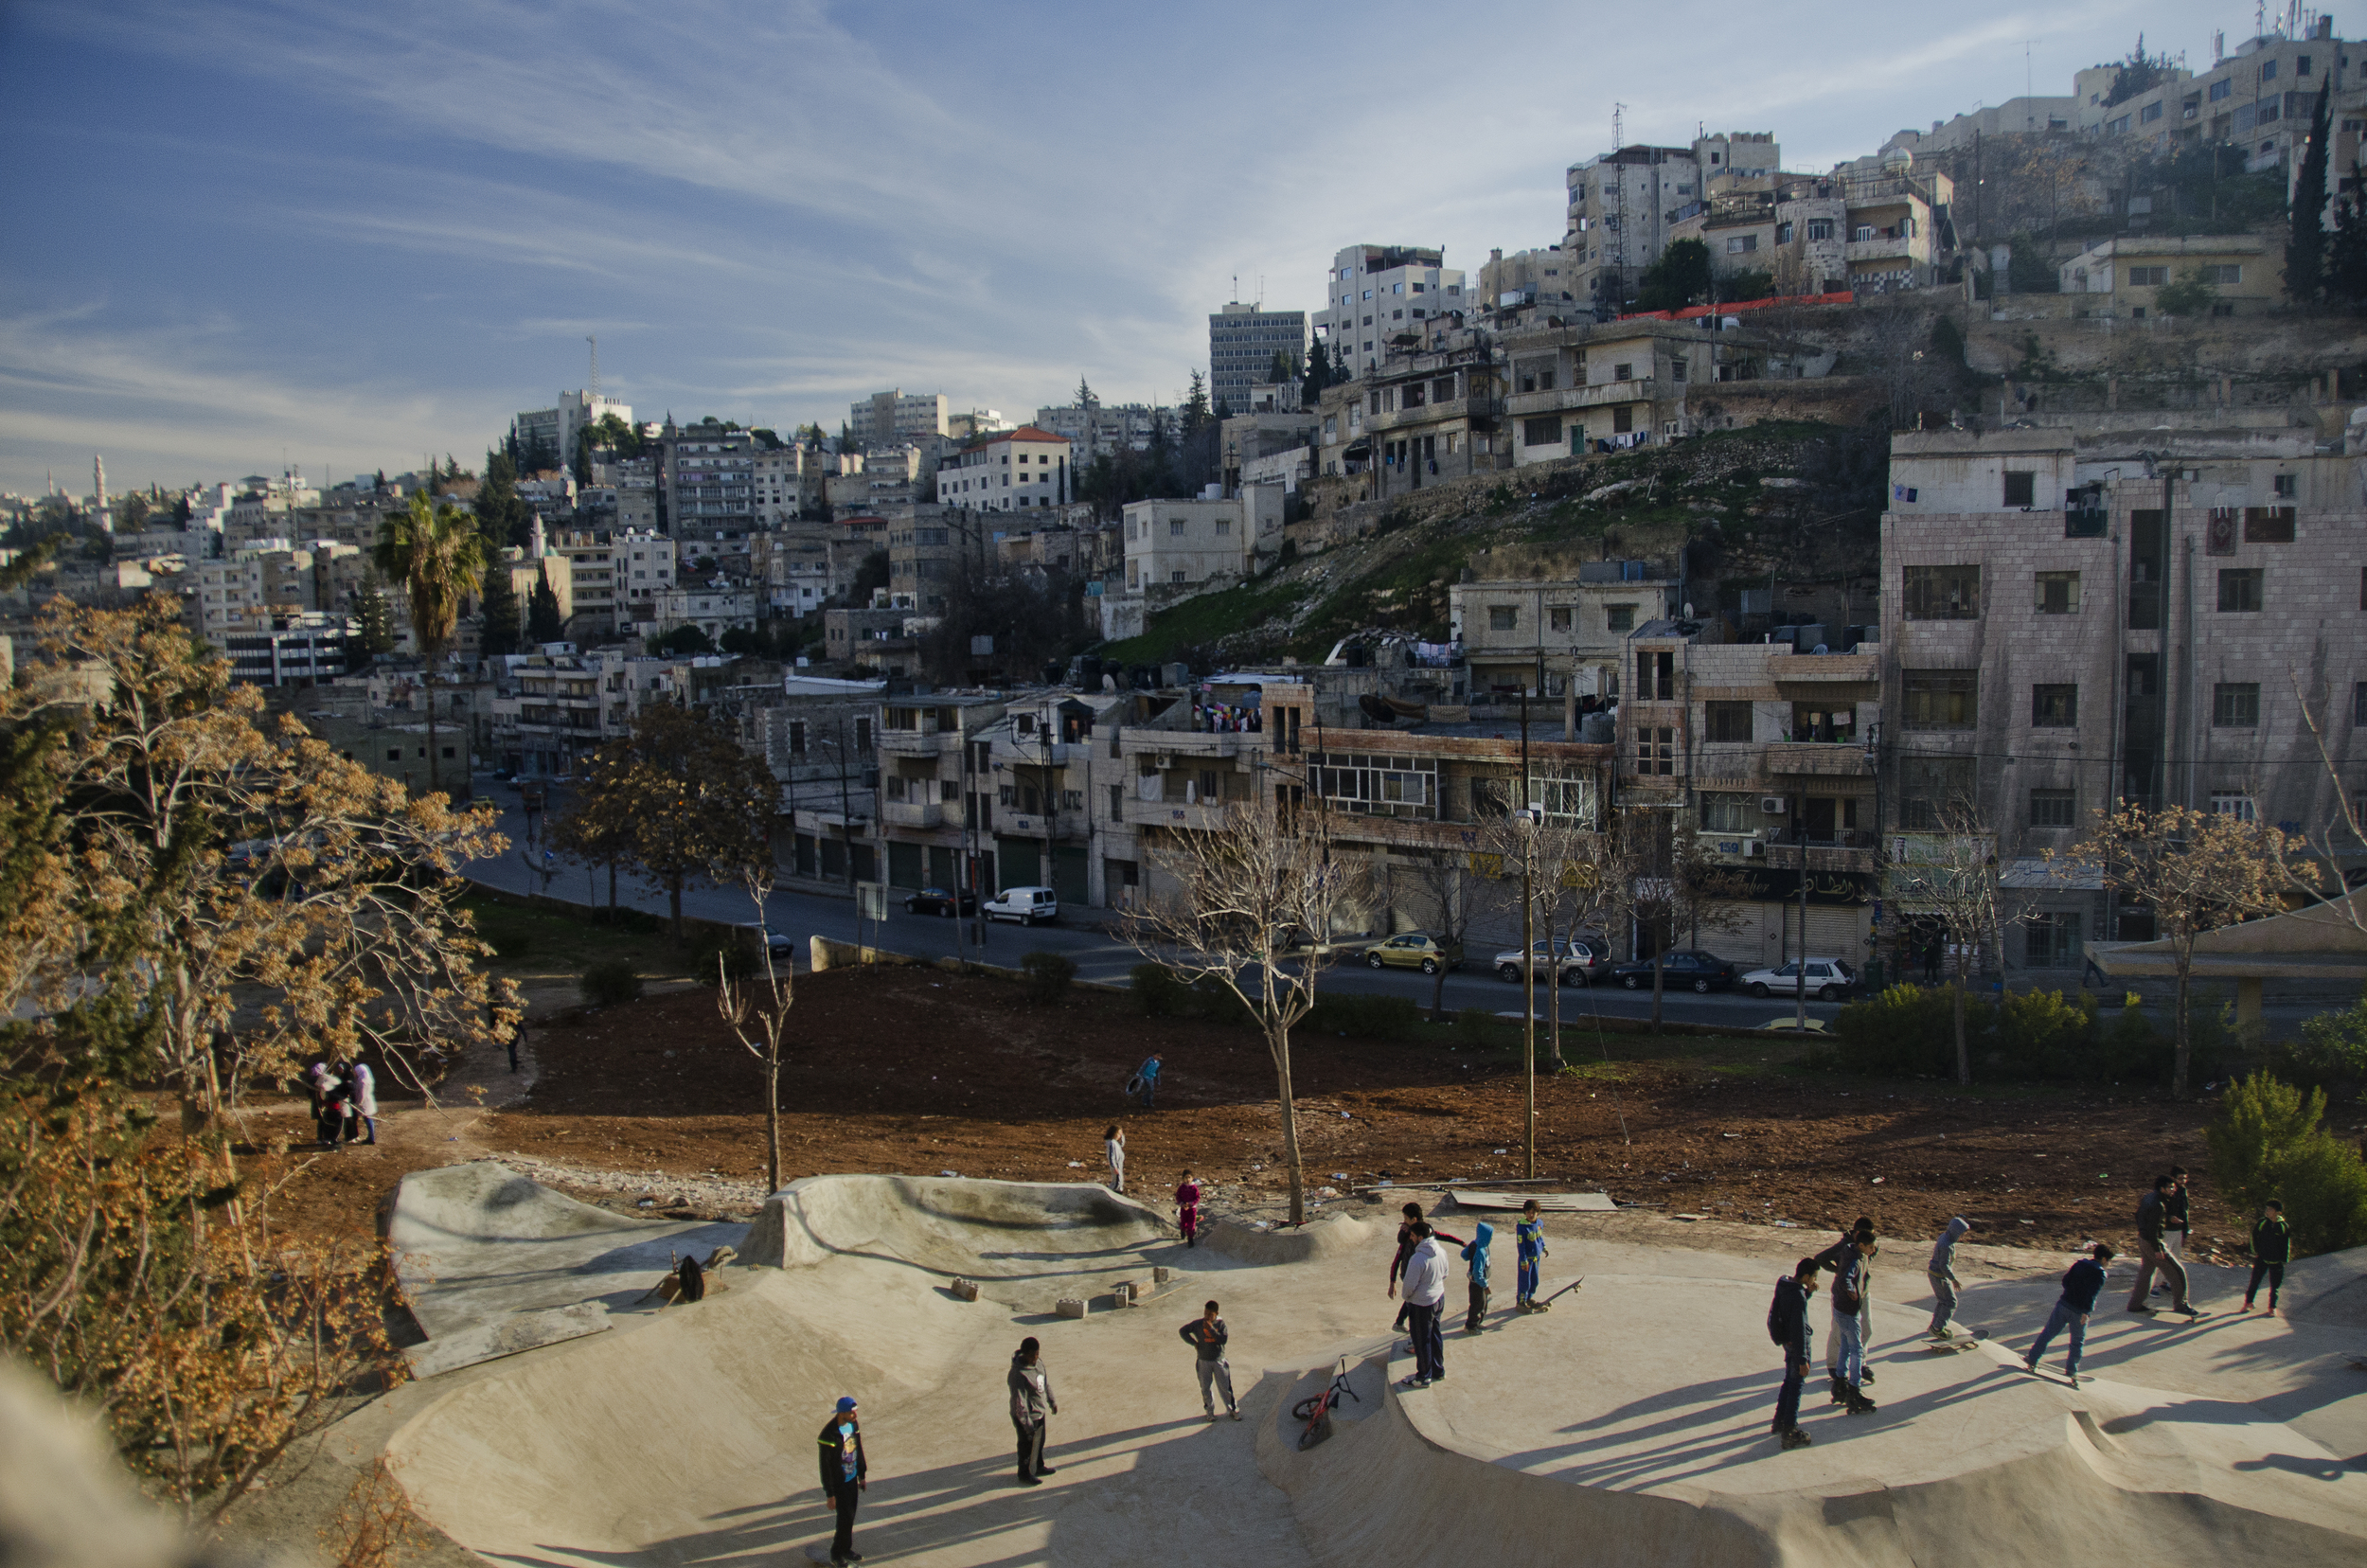 Skateboarders and onlookers gather during one of 7Hills Skatepark's first operational days, in downtown Amman. February 2014.